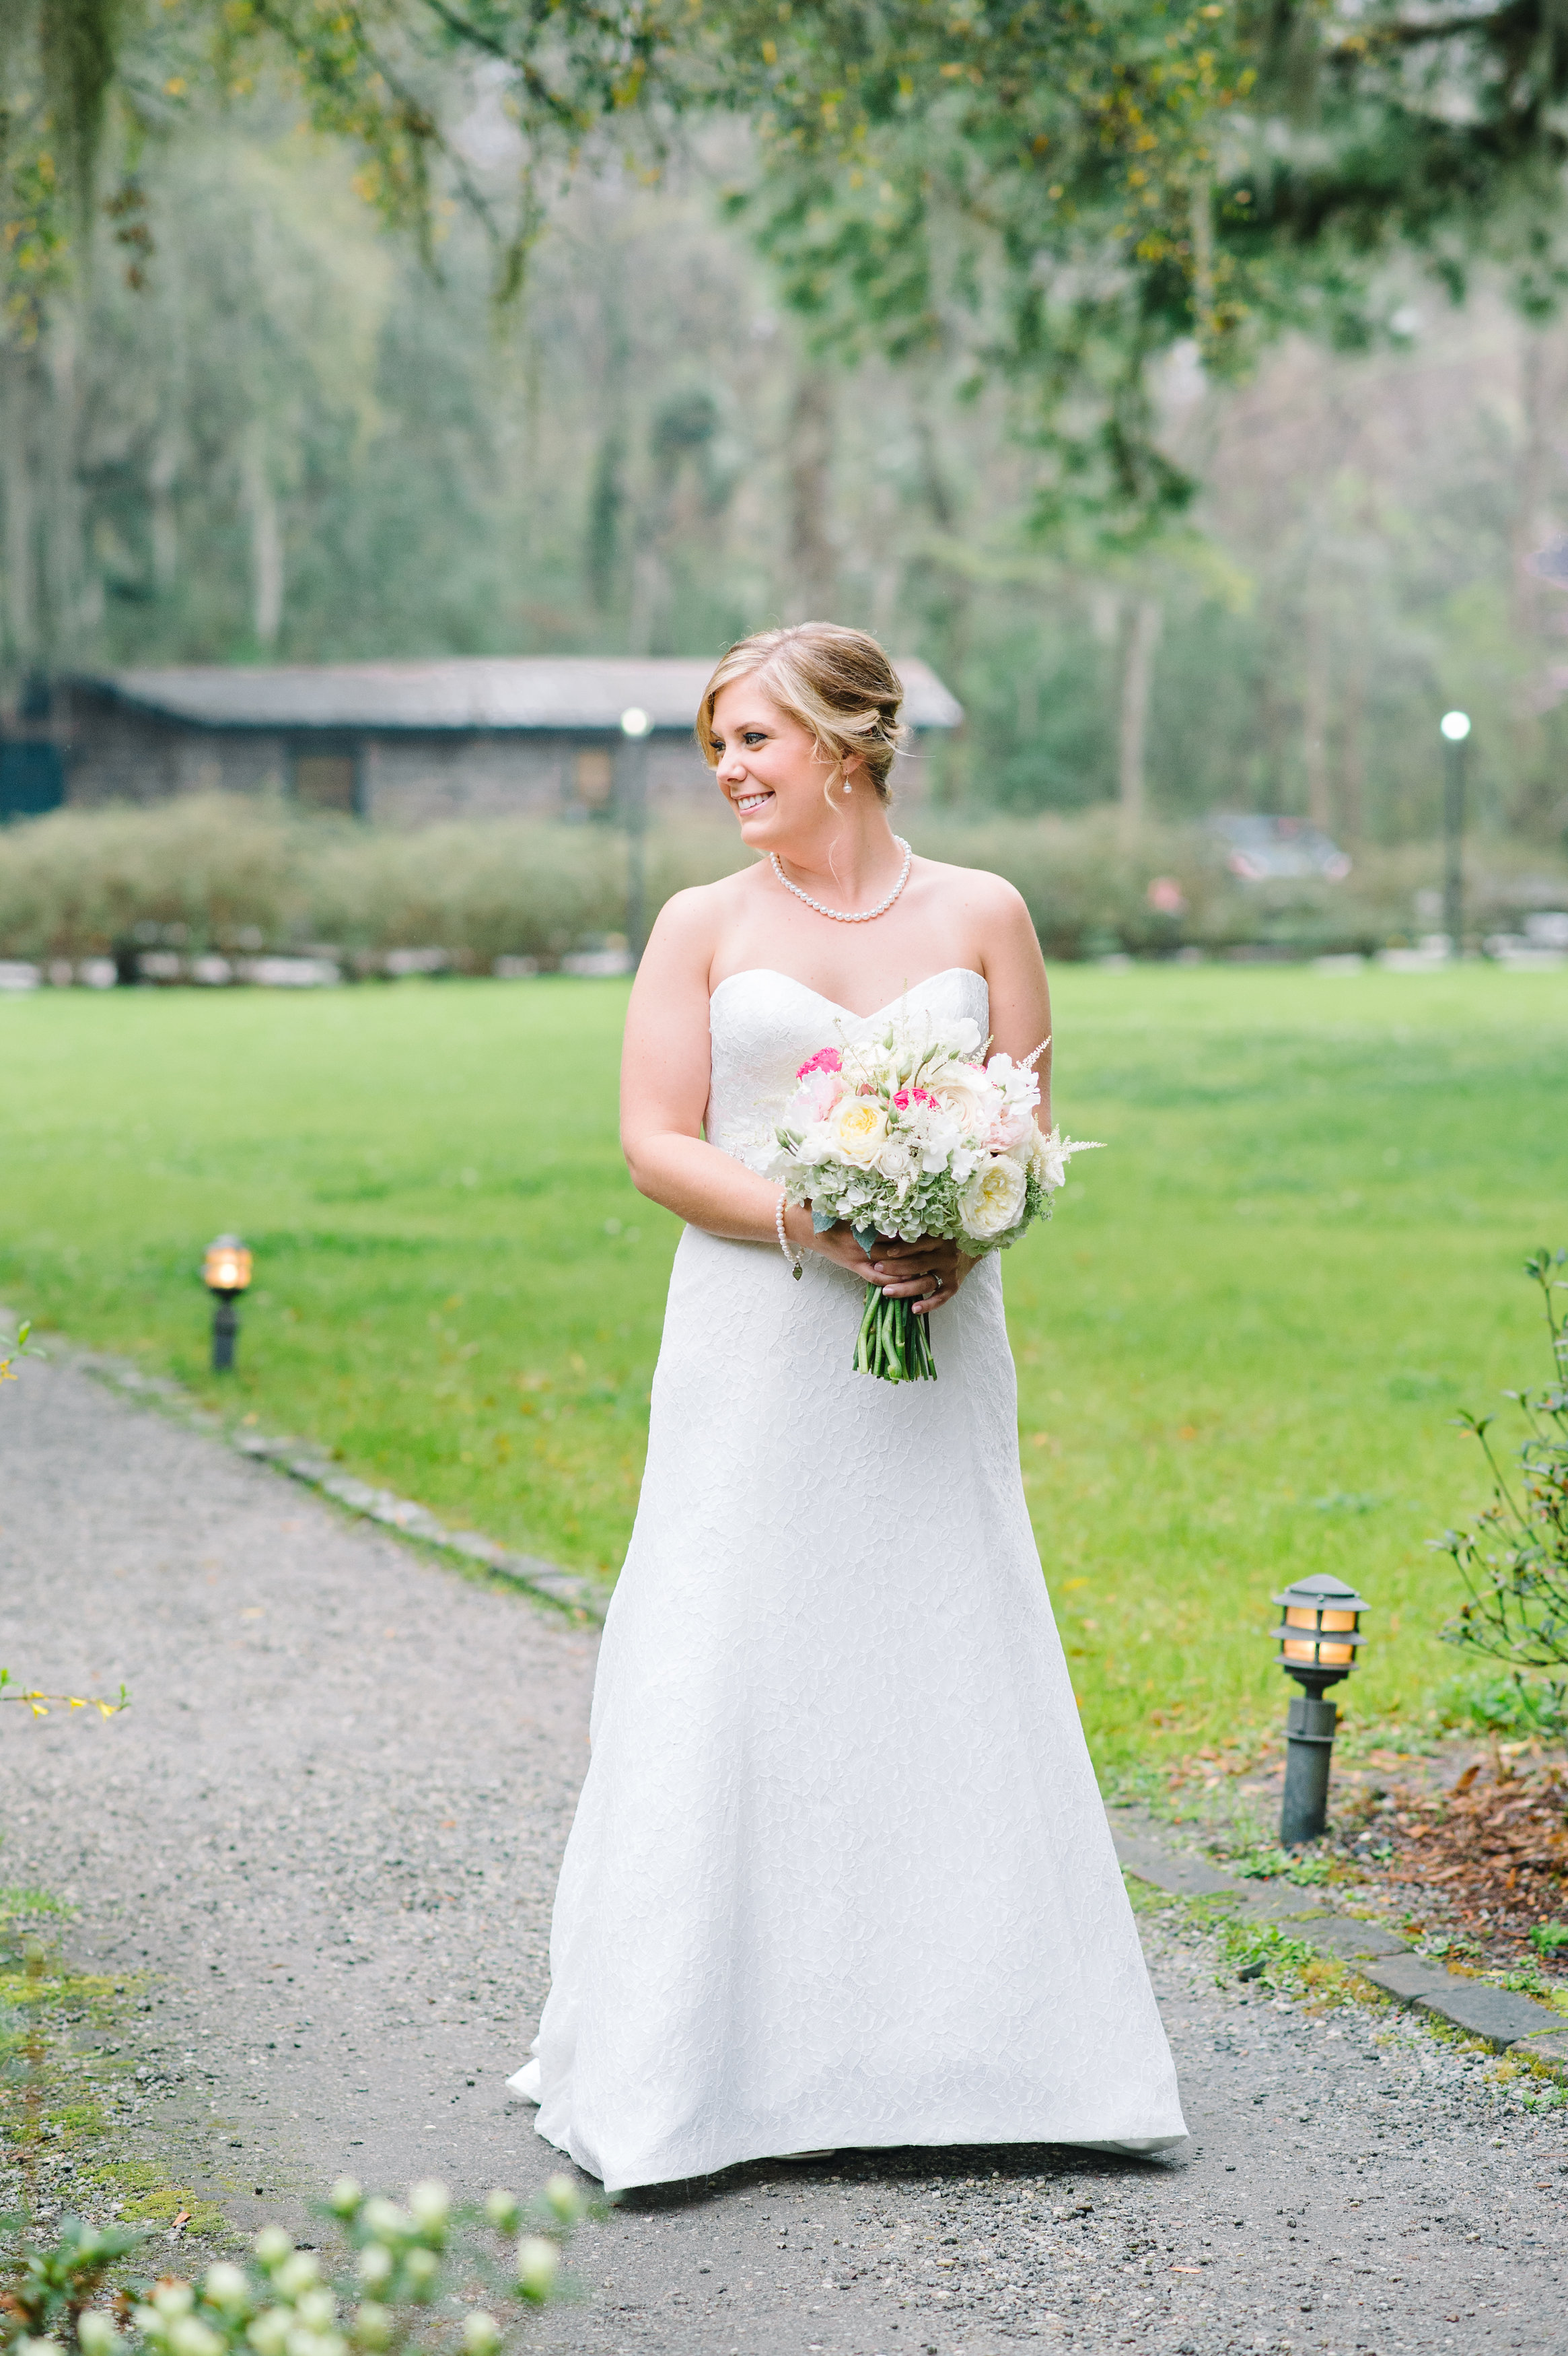 Kimberly+Clinton-MagnoliaPlantationWedding-92 - Copy.jpg